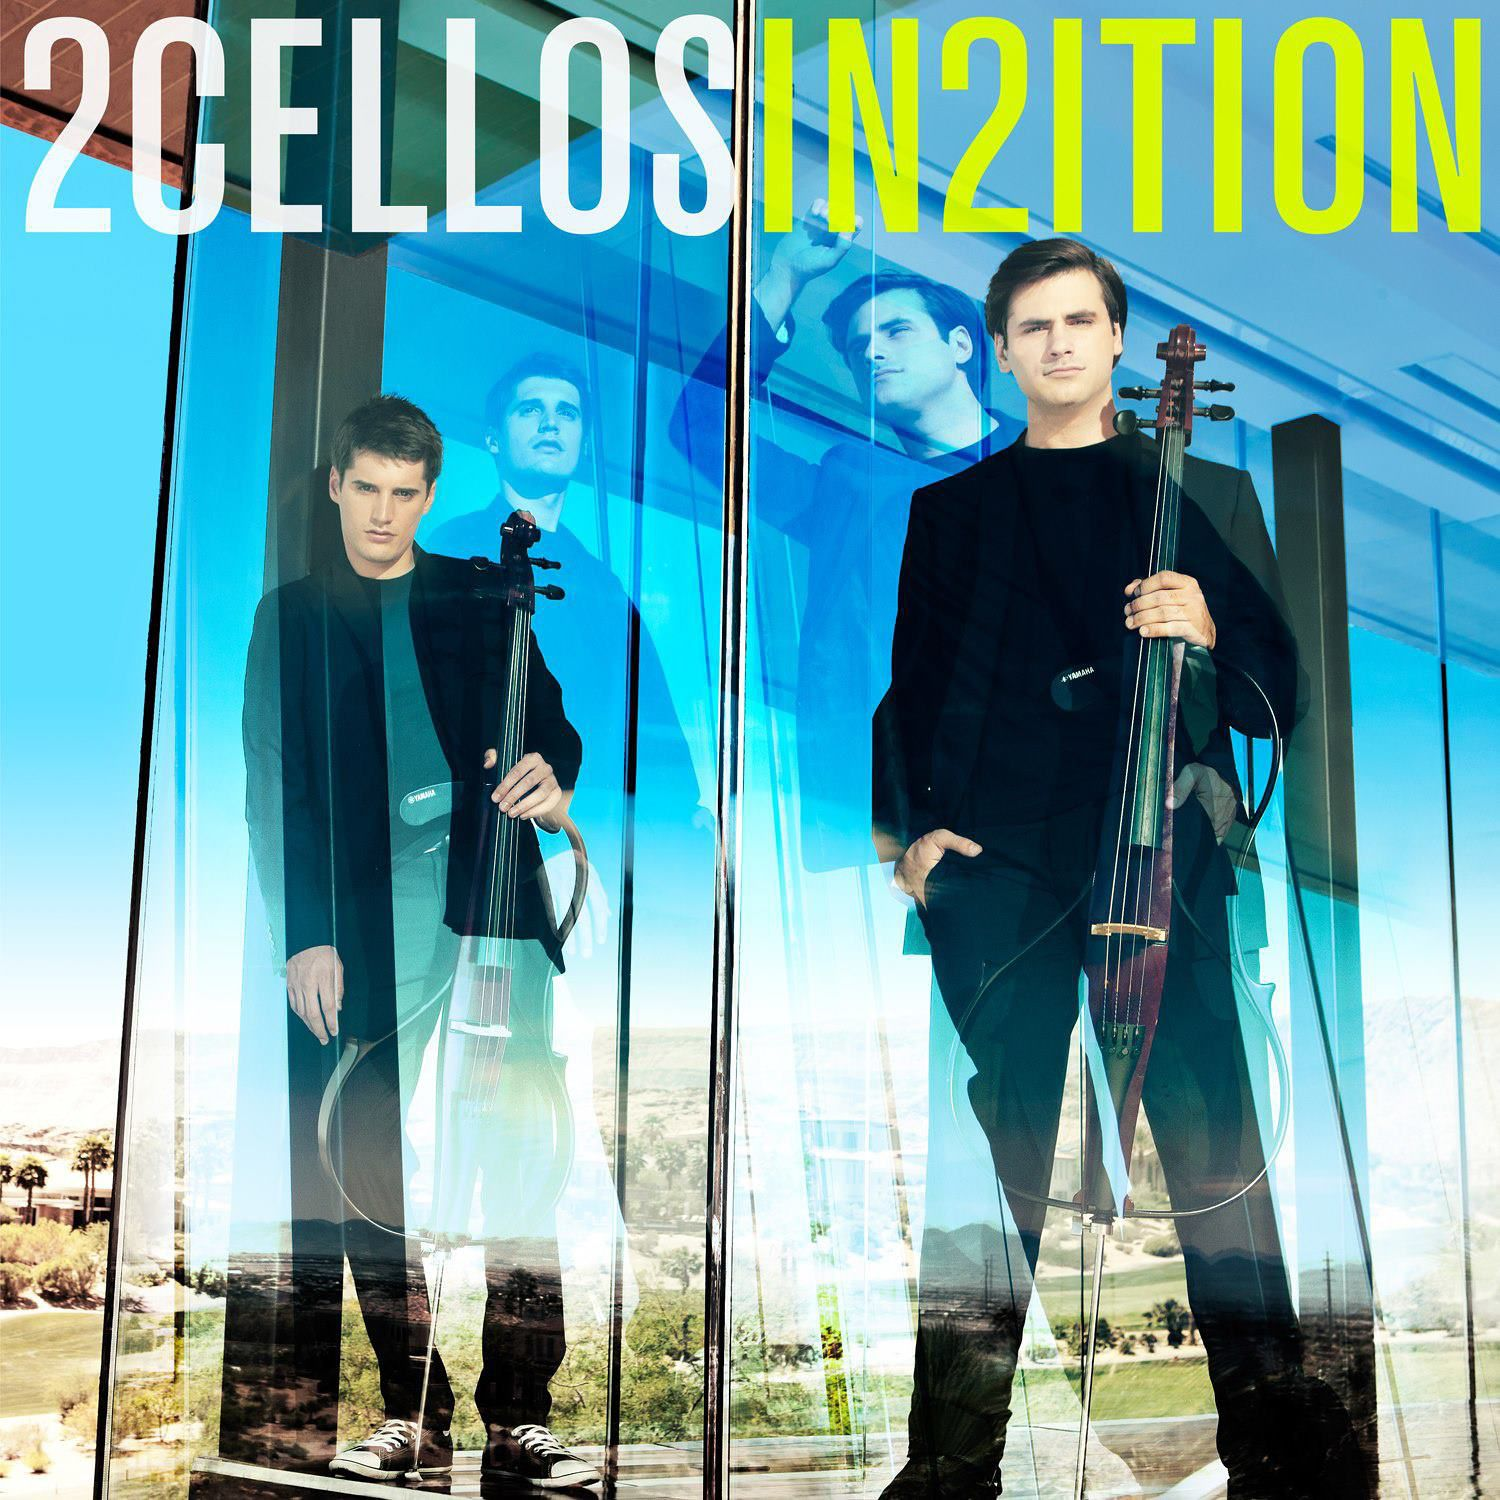 2Cellos - In2ition album cover